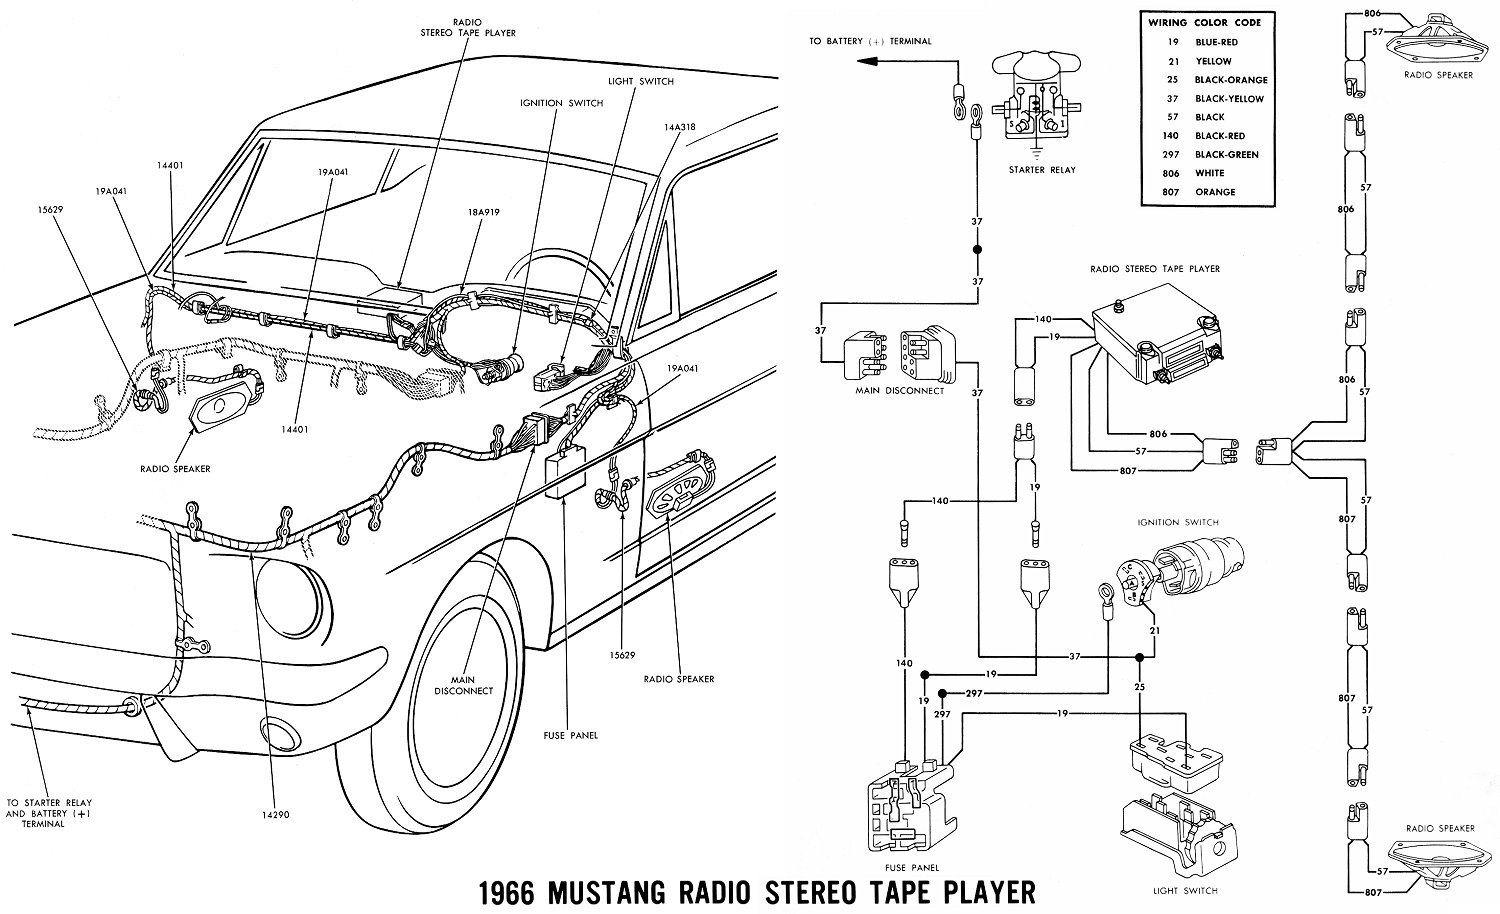 66stereo 1966 mustang wiring diagrams average joe restoration 1966 mustang wiring diagrams electrical schematics at nearapp.co